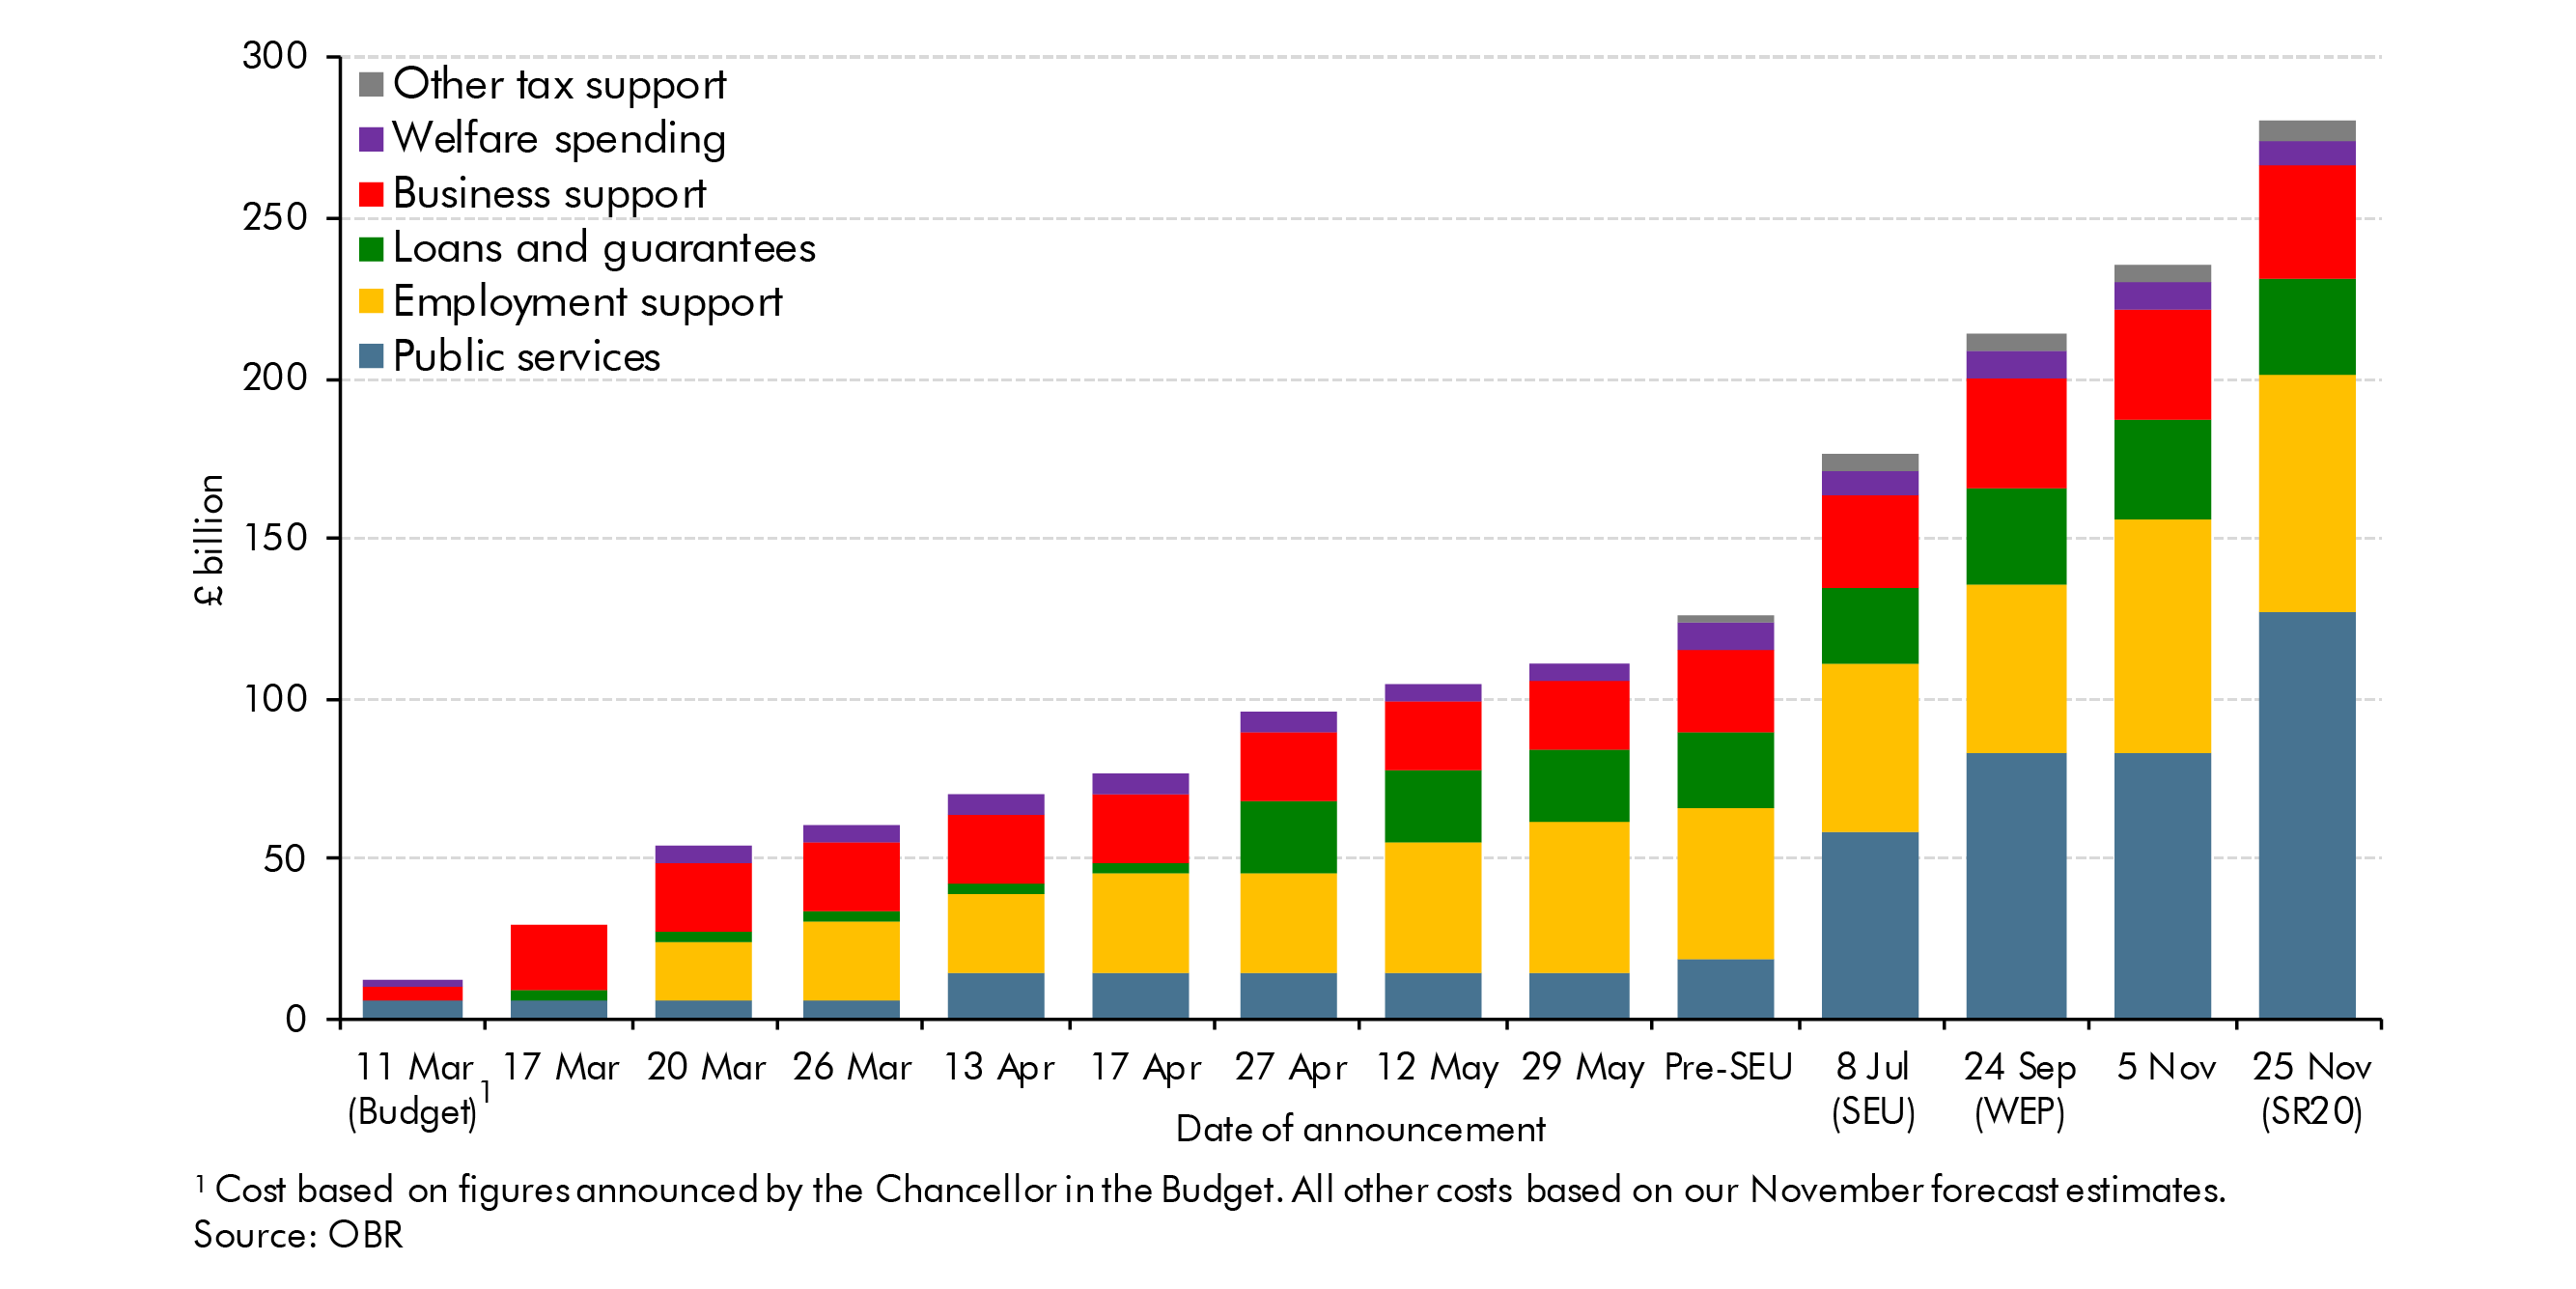 Chart 1 shows the increasing costs of the coronavirus policy response from the Chancellor's announcement on 11 March 2020 with figures until 25 November based on forecast estimates from the OBR.